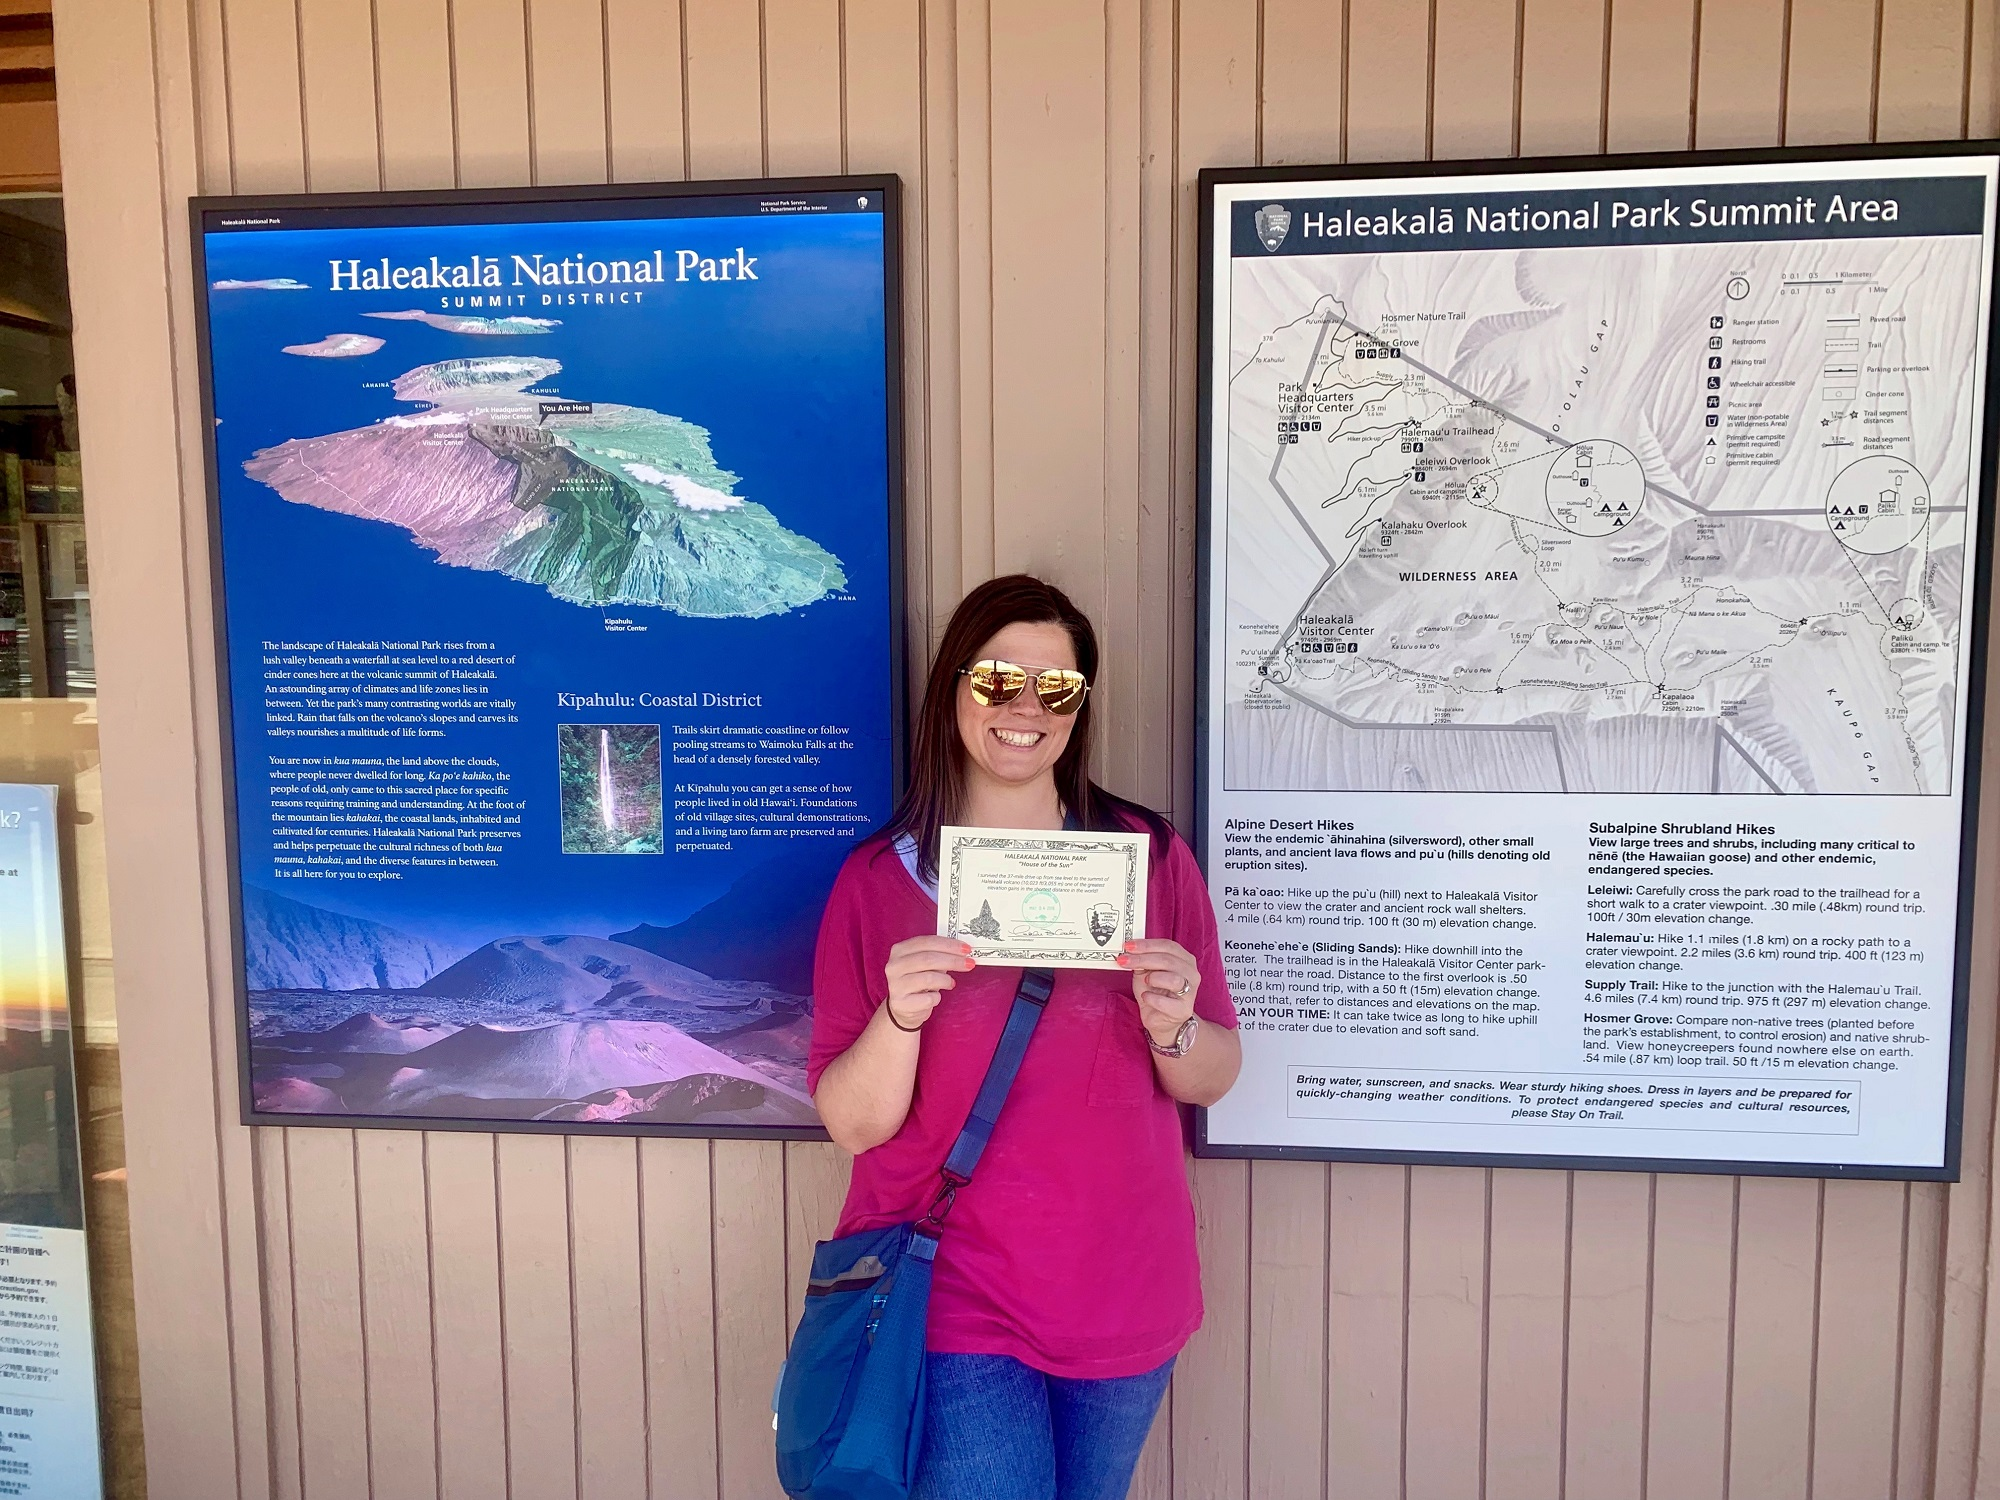 The Princess at Haleakala Crater Welcome Center